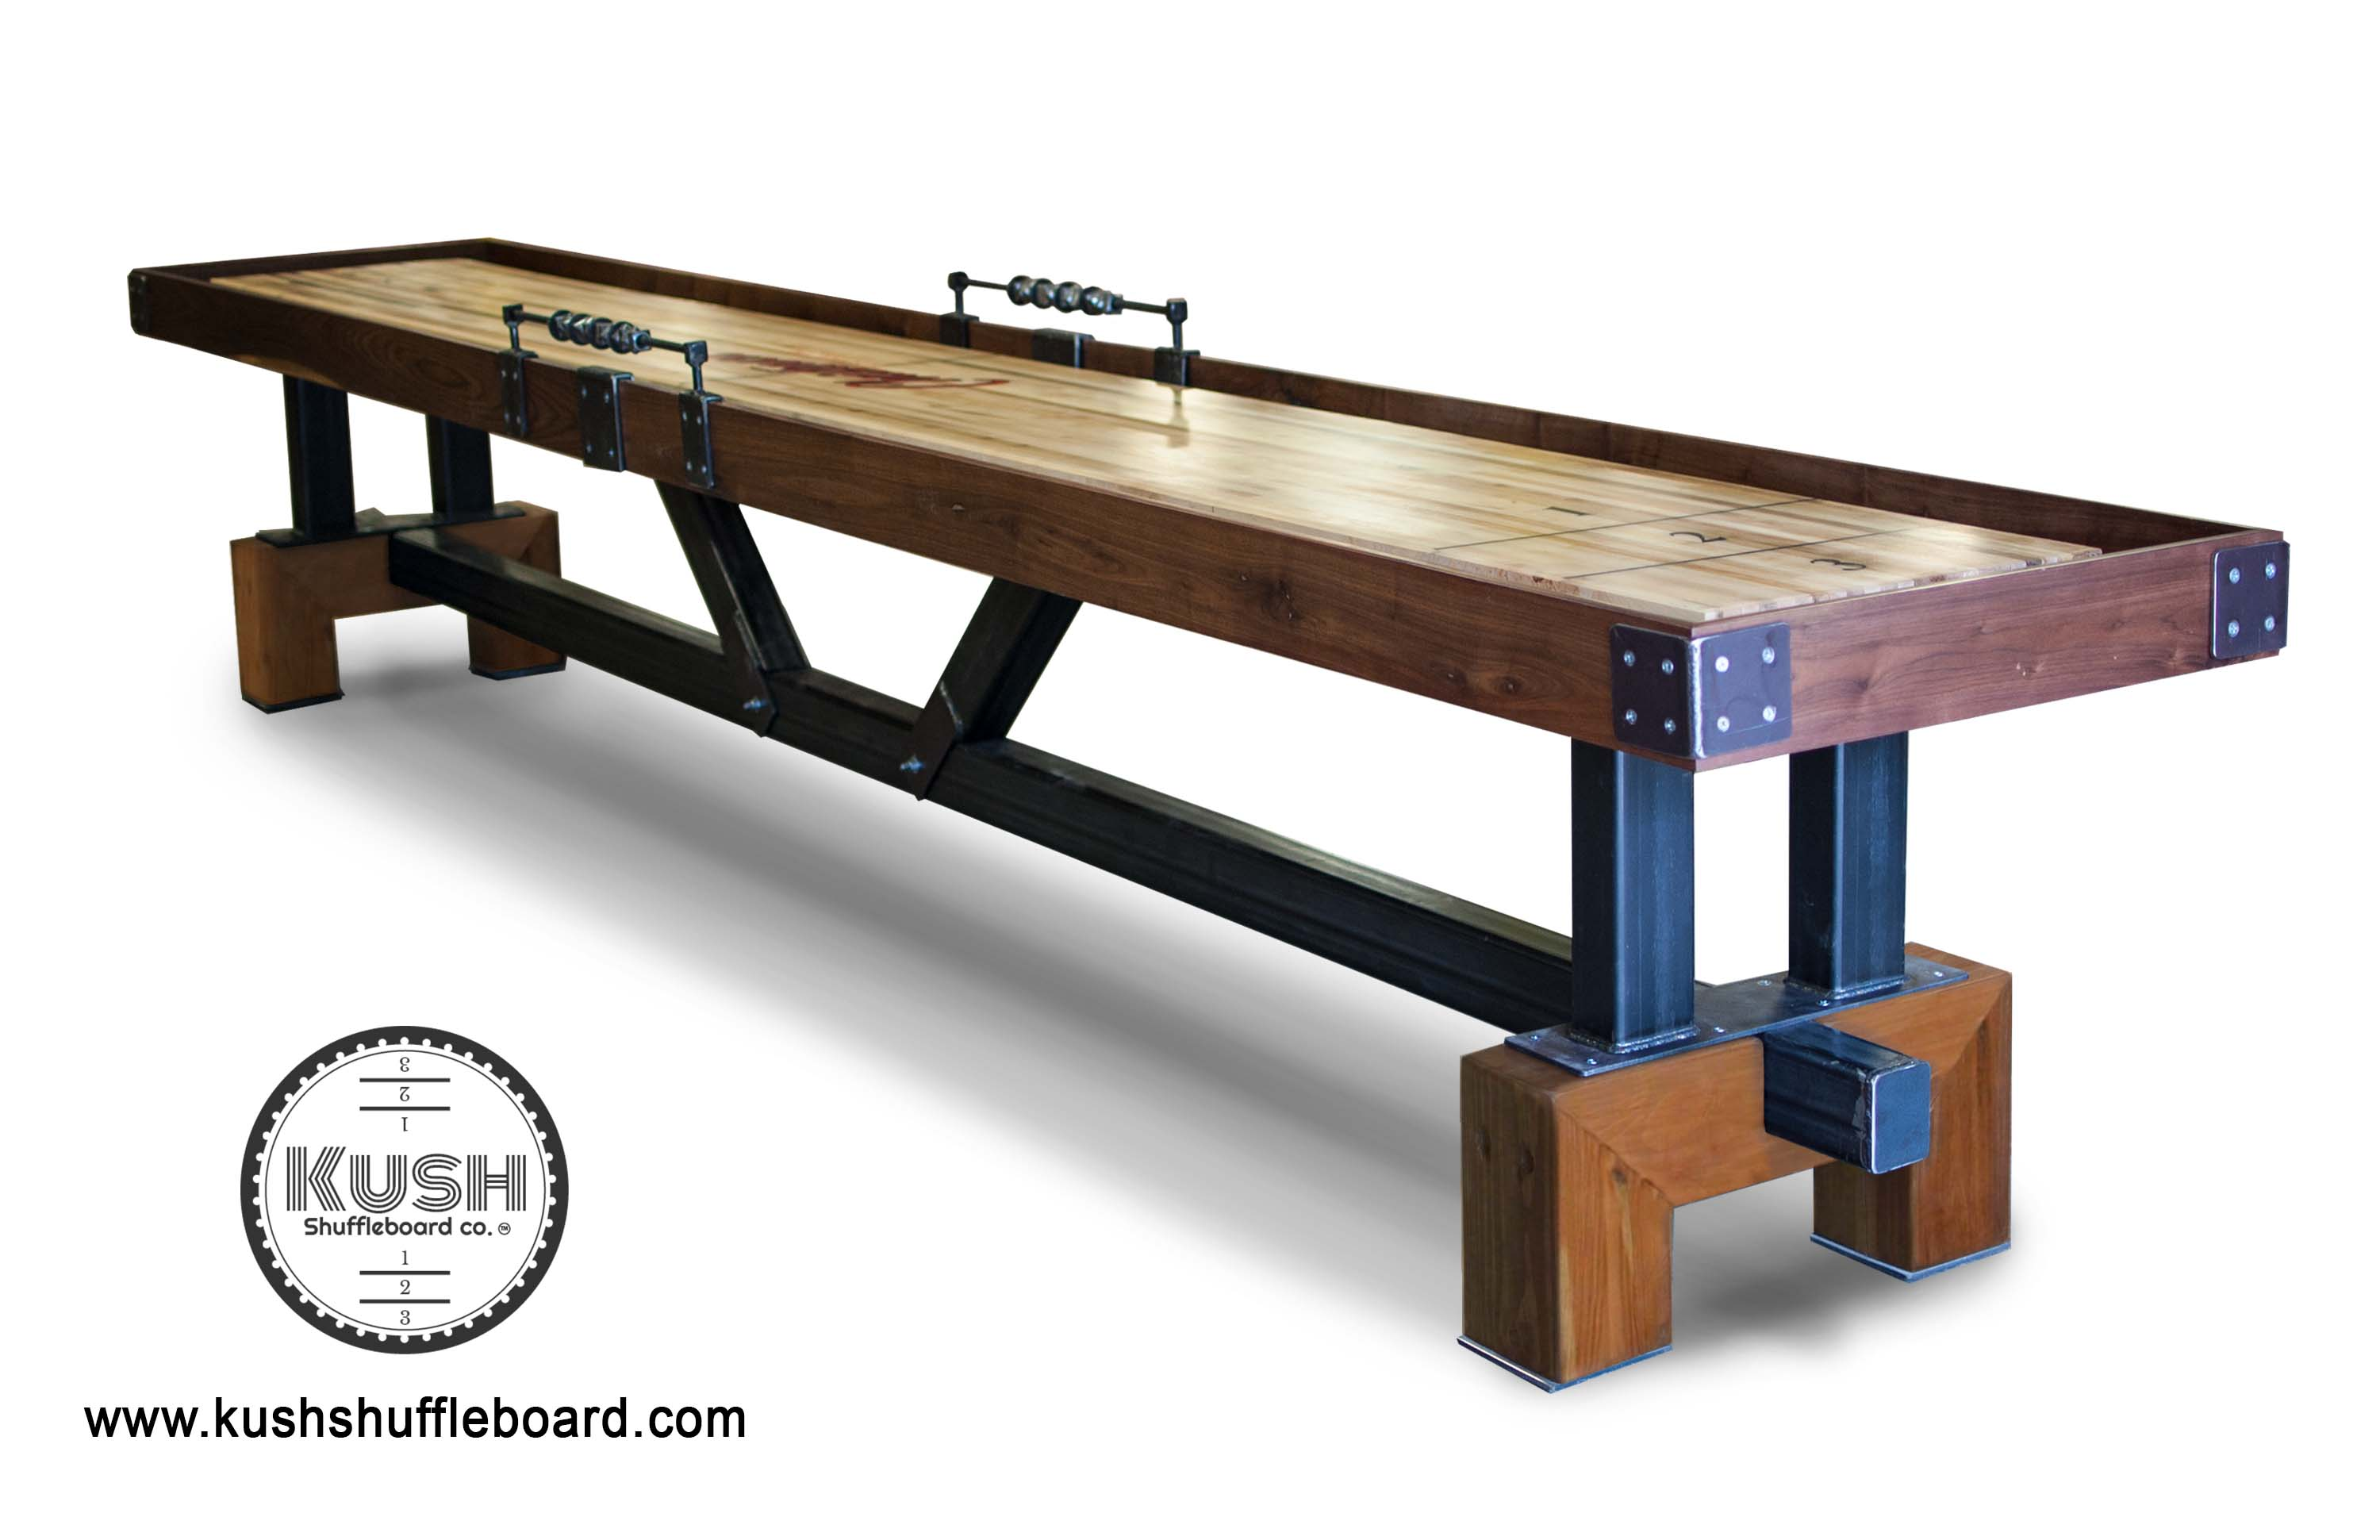 sale gametablesonline the q commercial shuffleboard sb d hudsonshuffleboards for com nsb product read table a